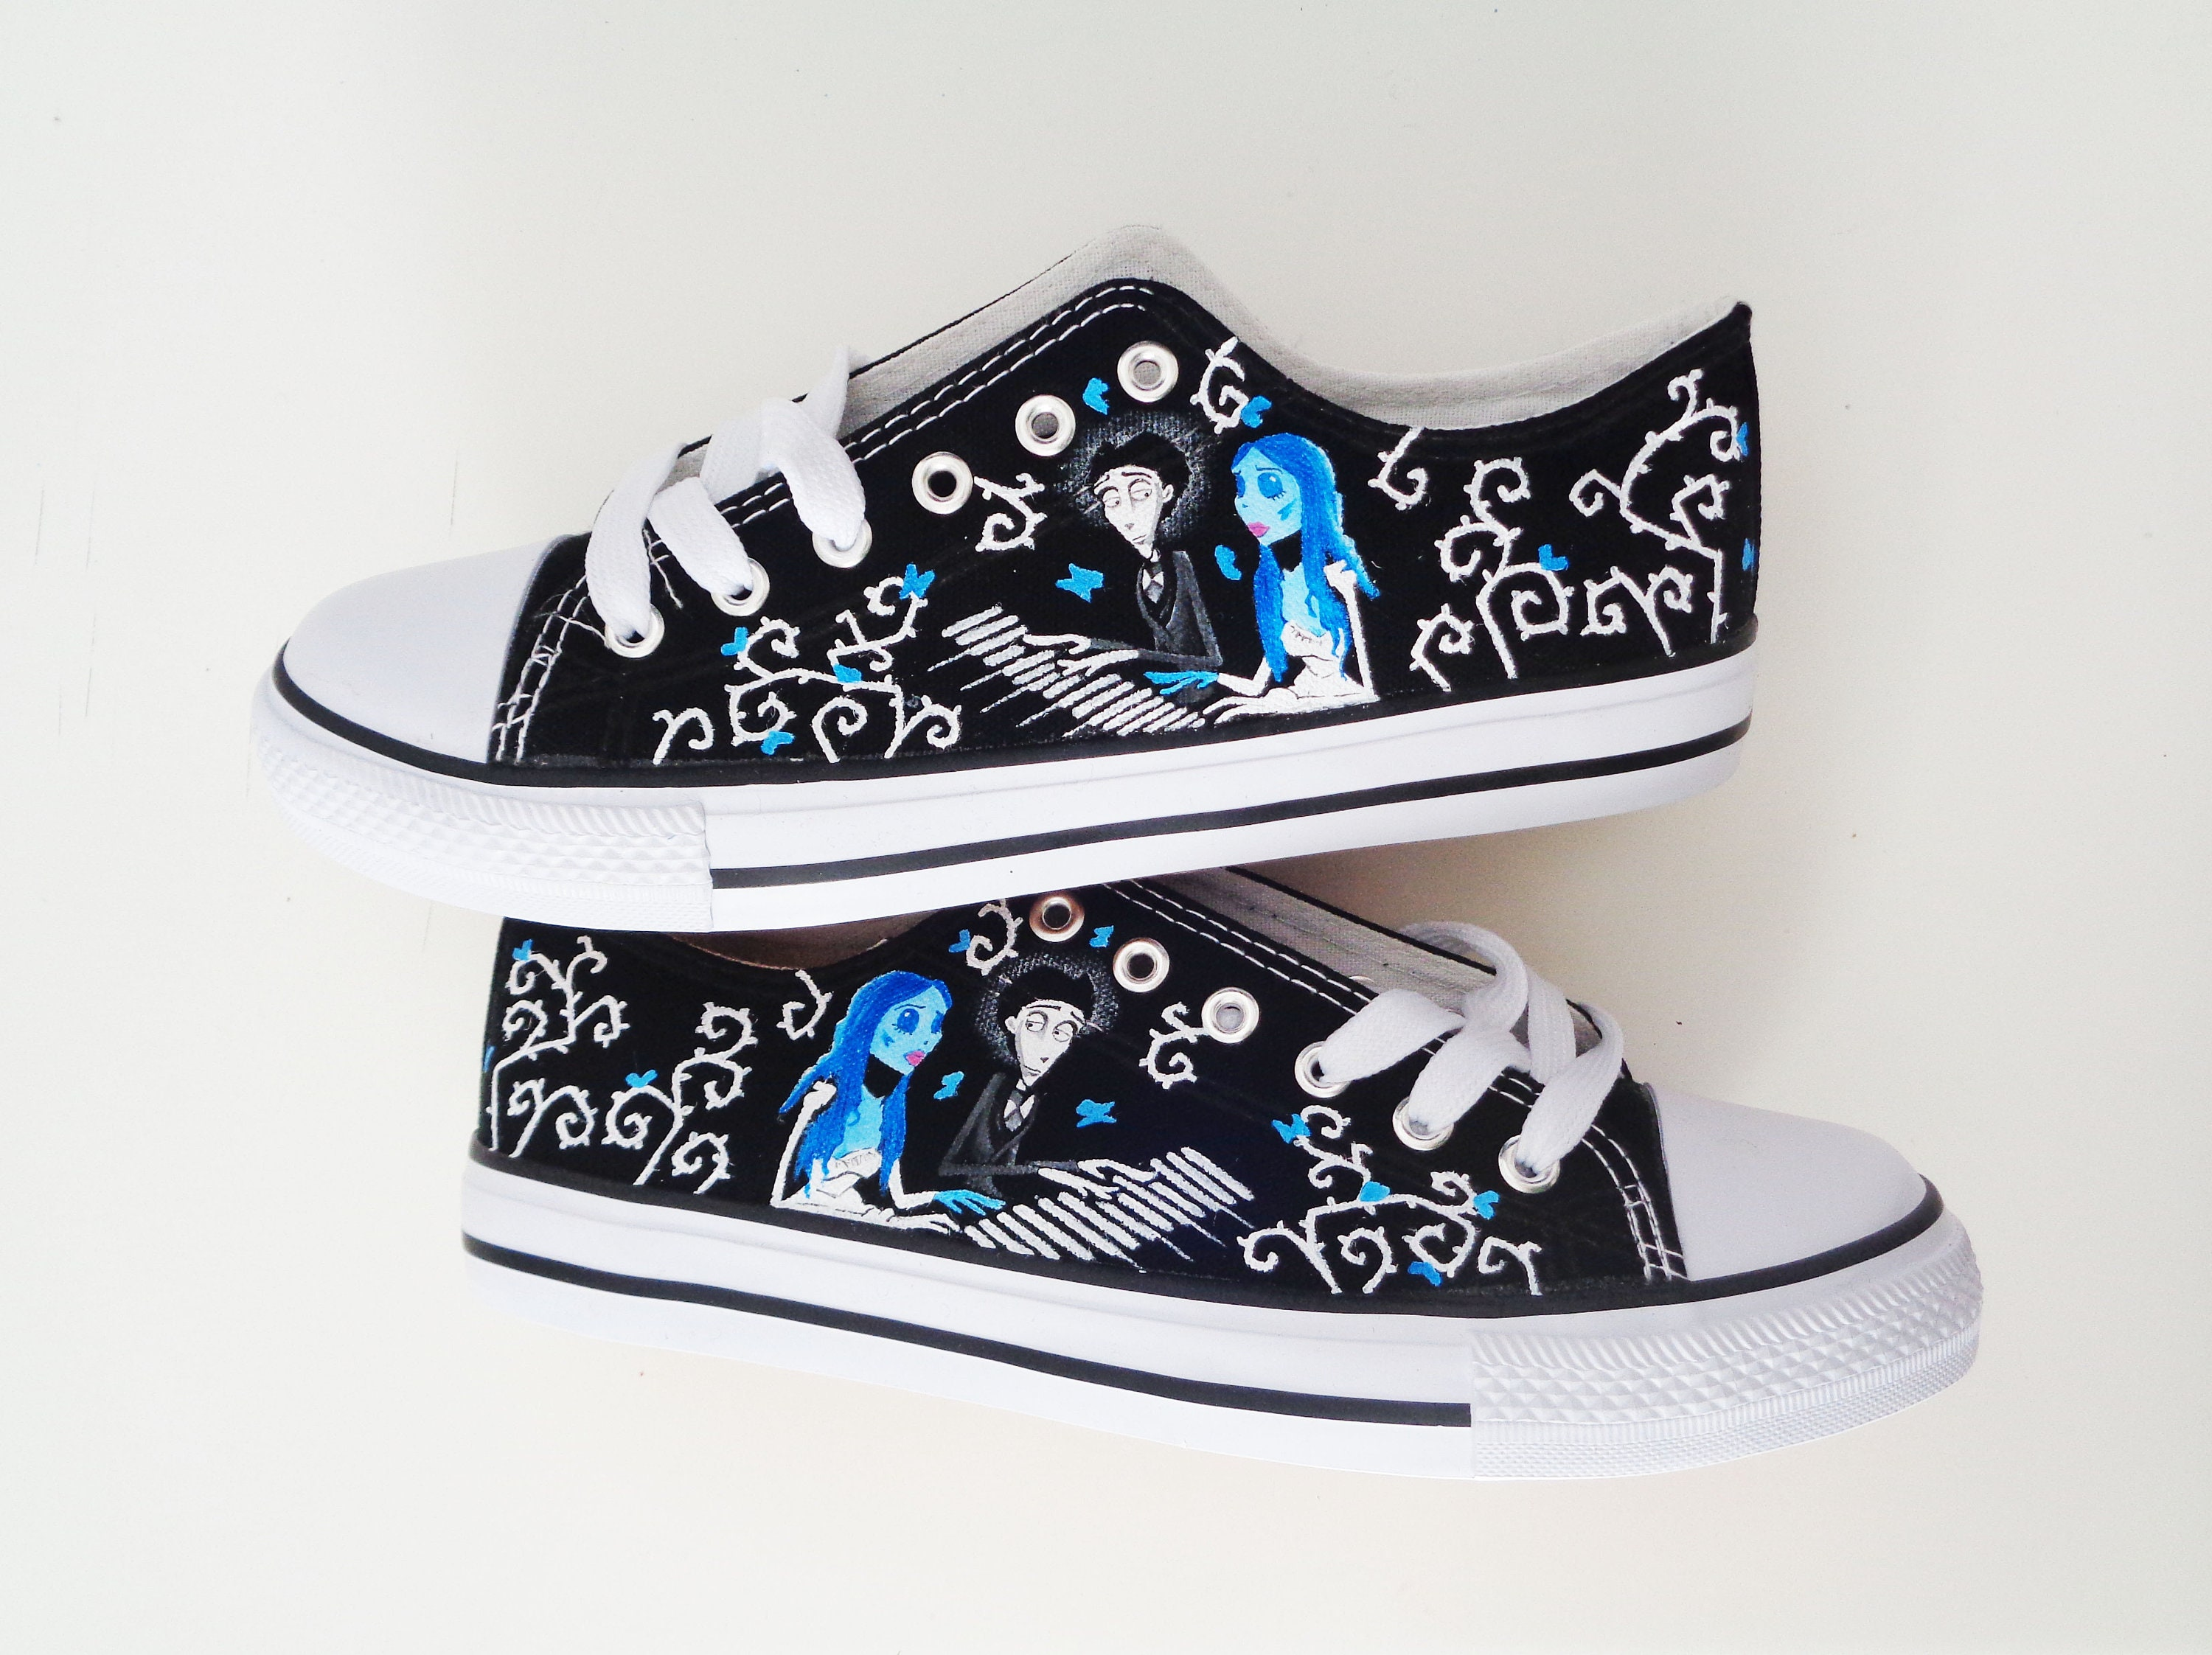 ae8402fc67189 Tim Burton hand painted shoes / Corpse bride shoes